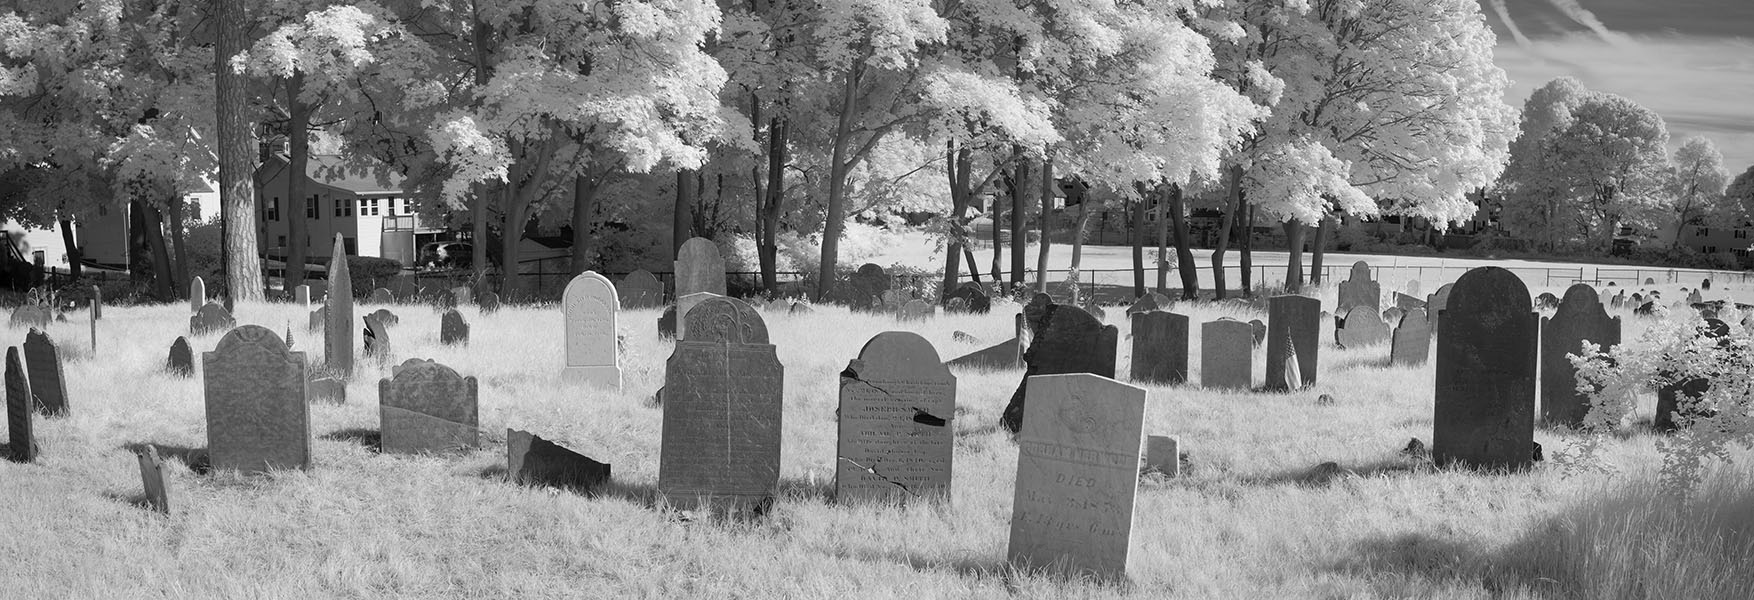 Infrared Photographic Panorama of Old Cemetery.